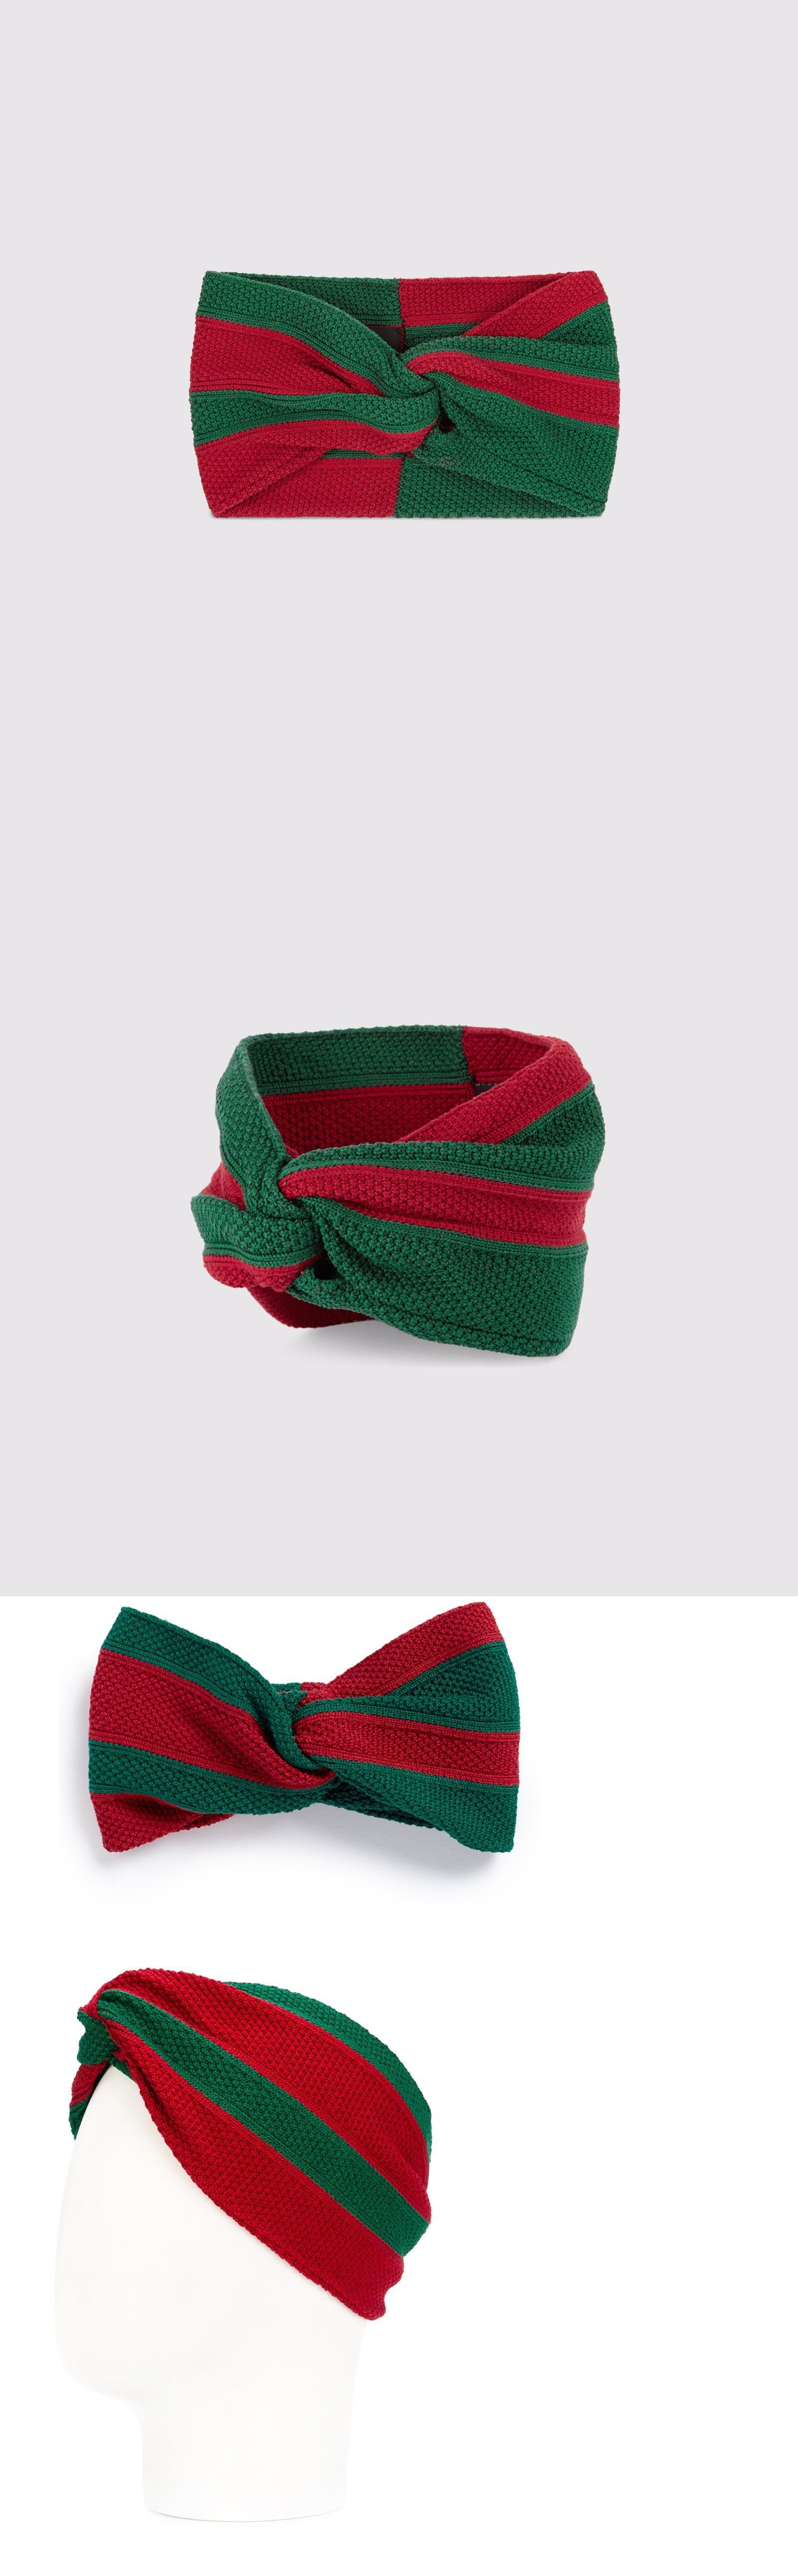 Hair Accessories 45220  Nwt Sold Out Authentic Gucci Runway Red And Green  Web Cotton Knit Knot Headband -  BUY IT NOW ONLY   849 on eBay! 64c4e6e7426